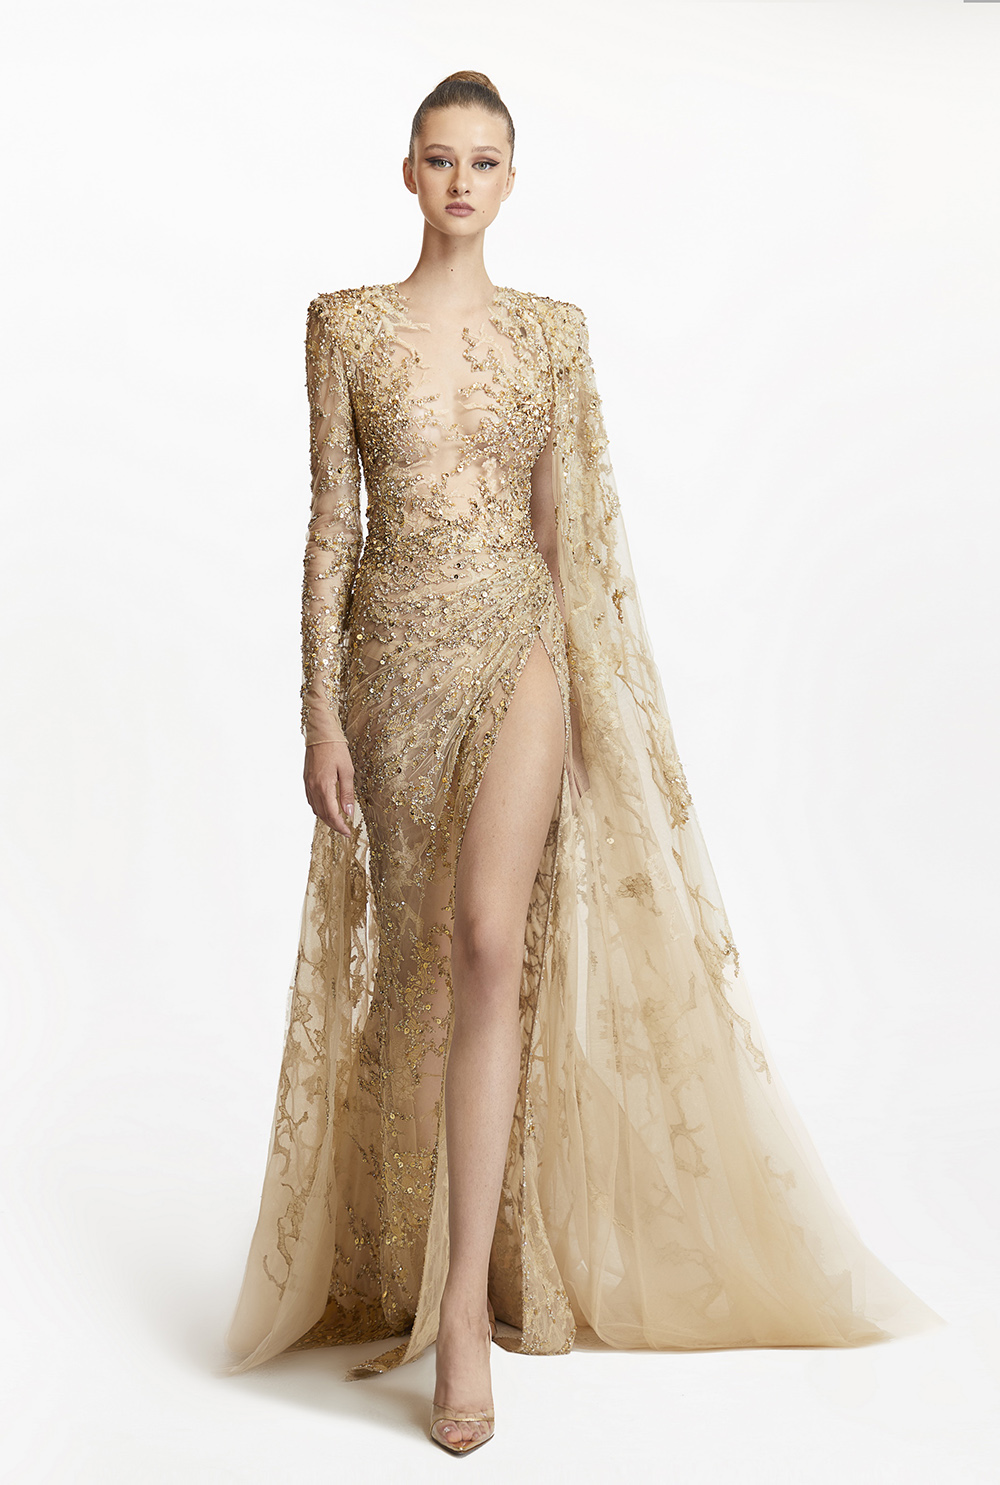 Tony Ward Fall 2021 Couture Collection I DreaminLace.com #fashionblog #couture